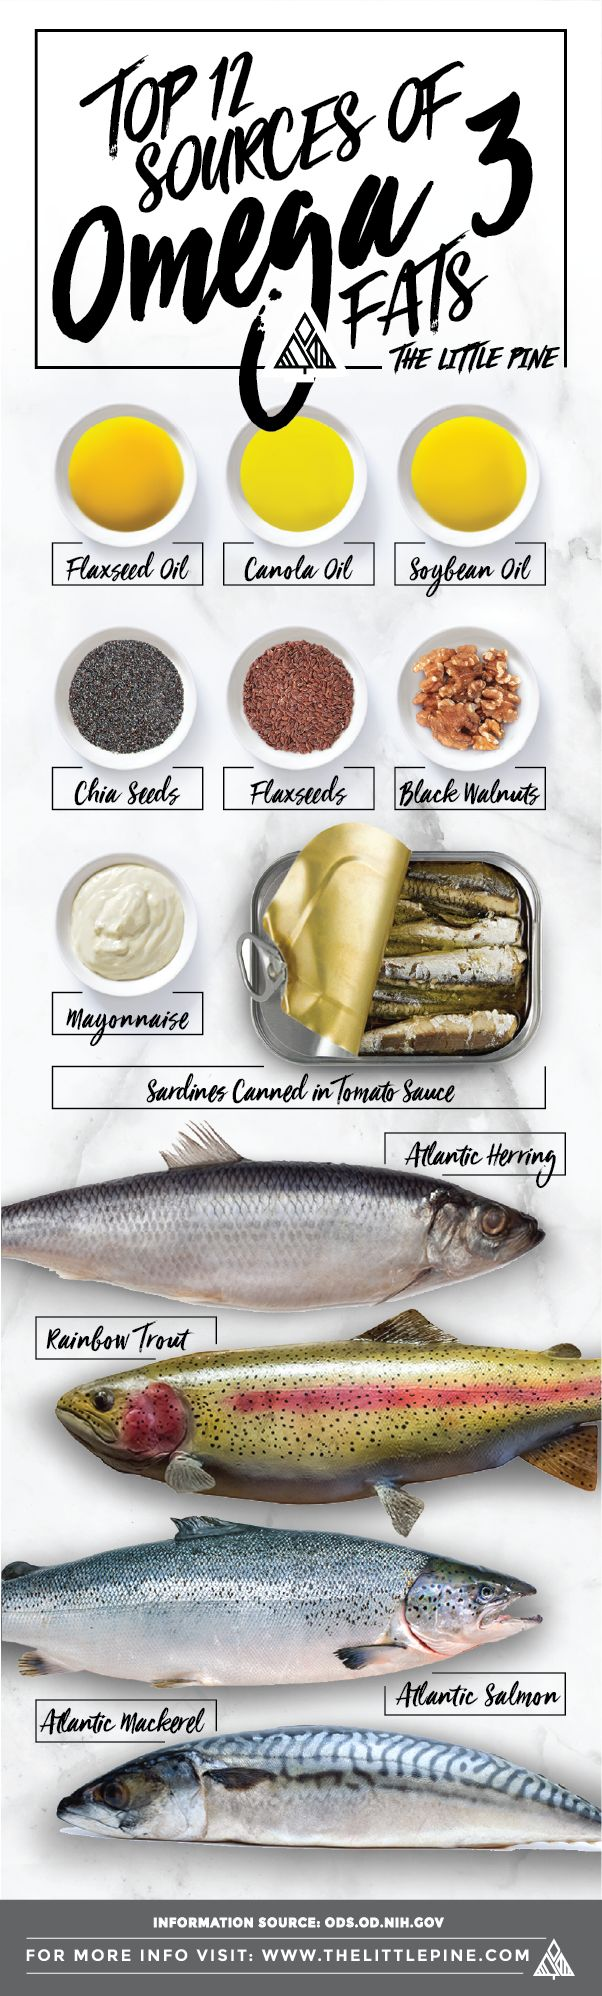 The fat you need to eat...